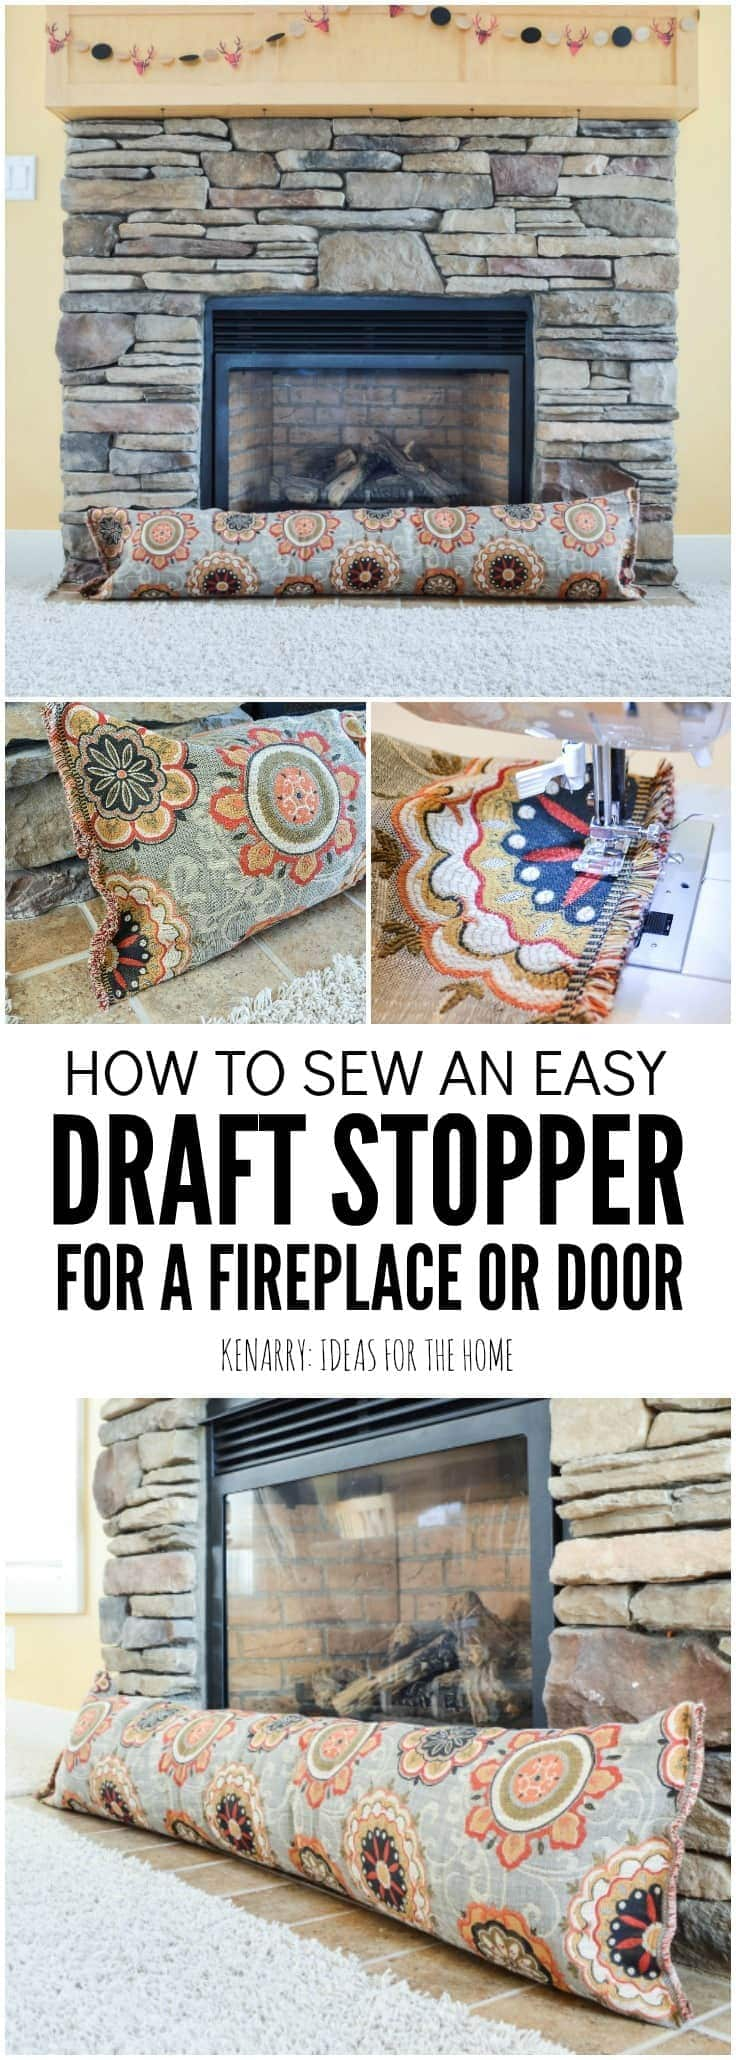 Keep cold air from coming into your home this season. In this easy sewing tutorial, you will learn how to make a fireplace draft blocker. This simple DIY draft stopper idea will help you stay warm and save on heating costs this winter.